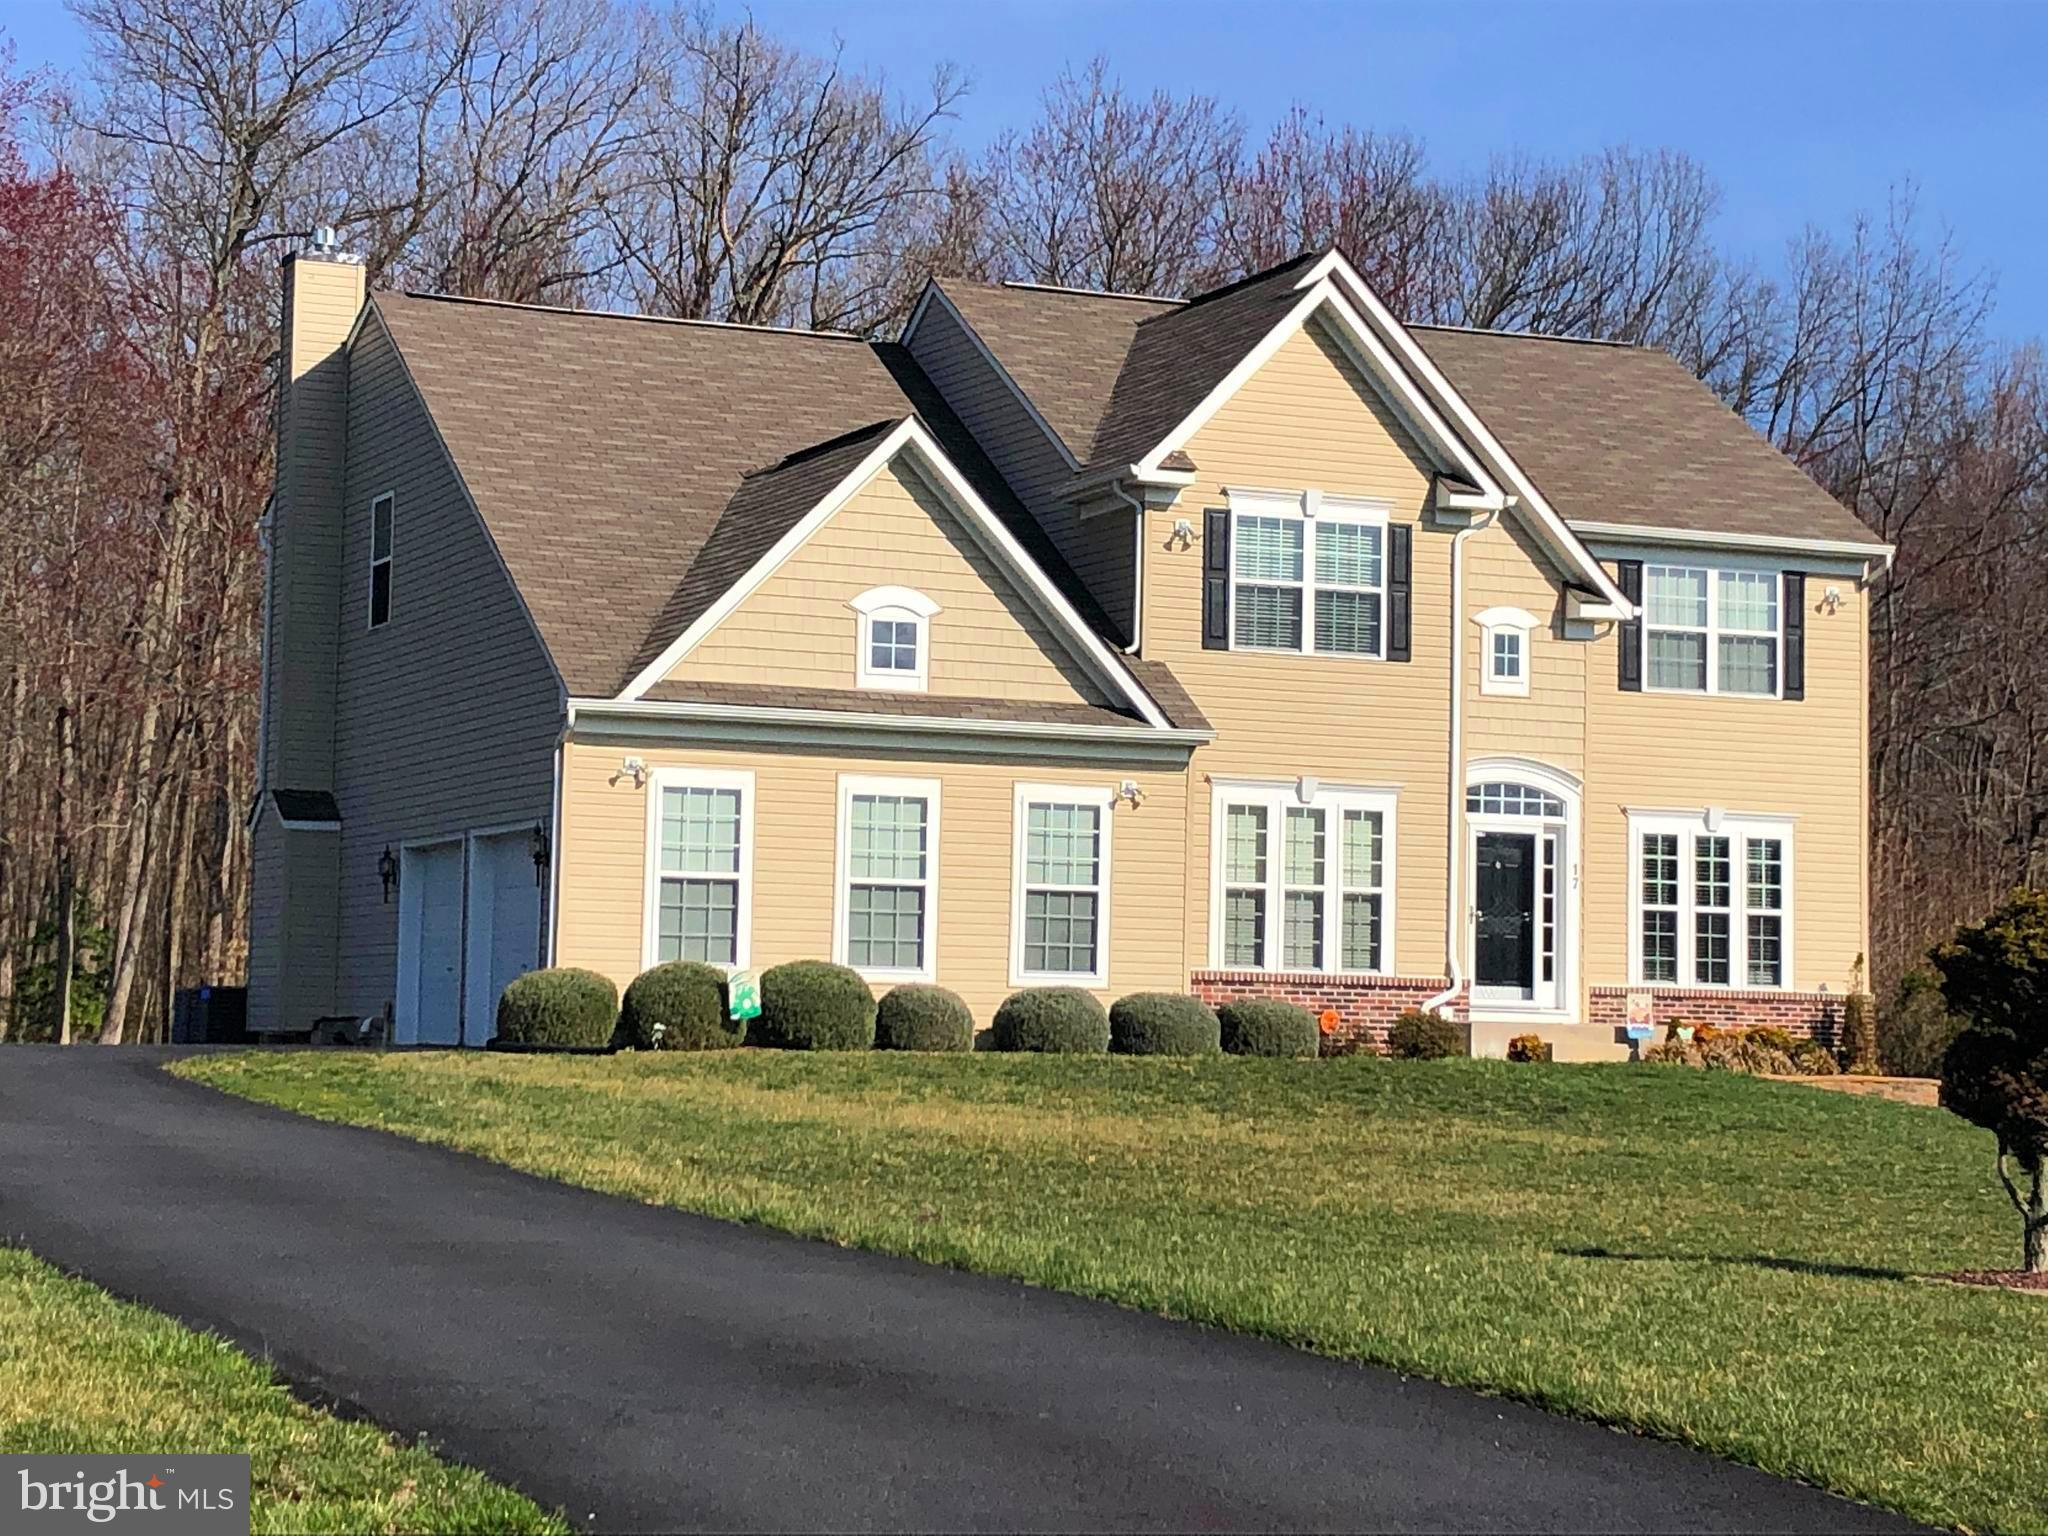 17 Rhodes Mountain Dr, North East, MD, 21901